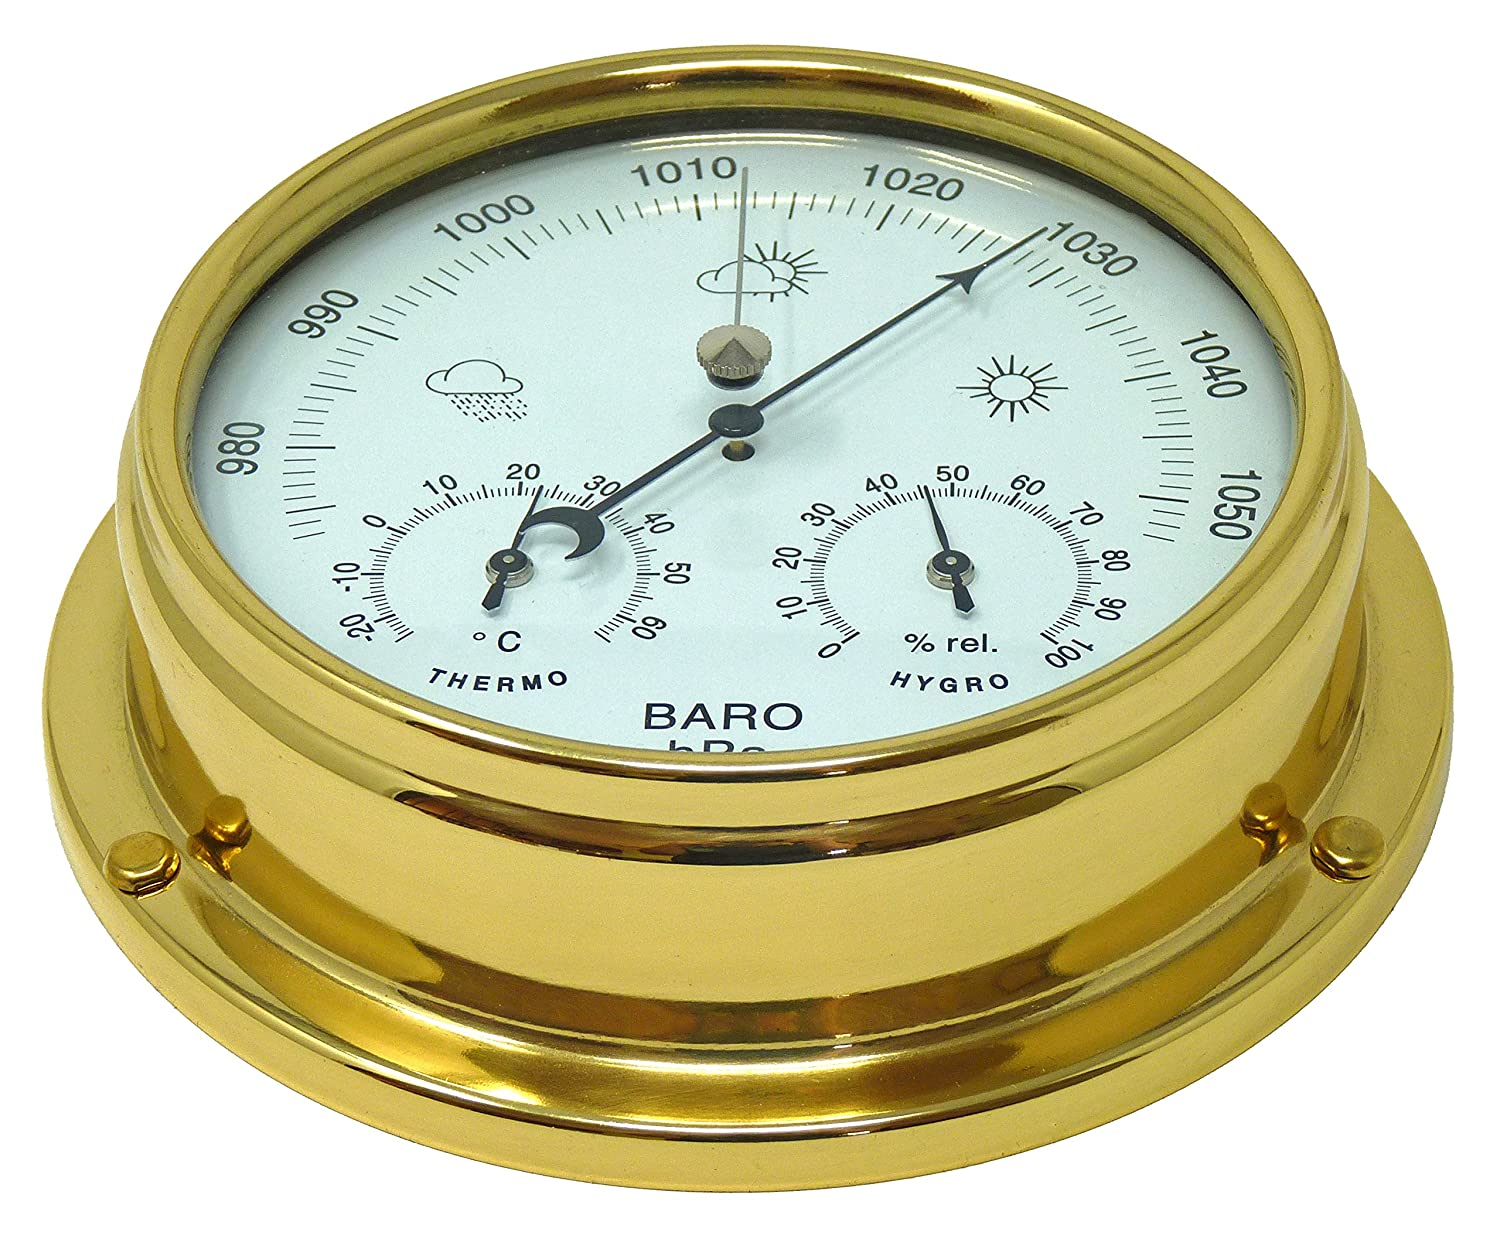 Brass Barometer with built in Hygrometer and Thermometer, Heavy Lacquered Brass (1/2kg), Sailing Ship Yacht Boating Marine Coastal Clock, Handmade In England Tabic